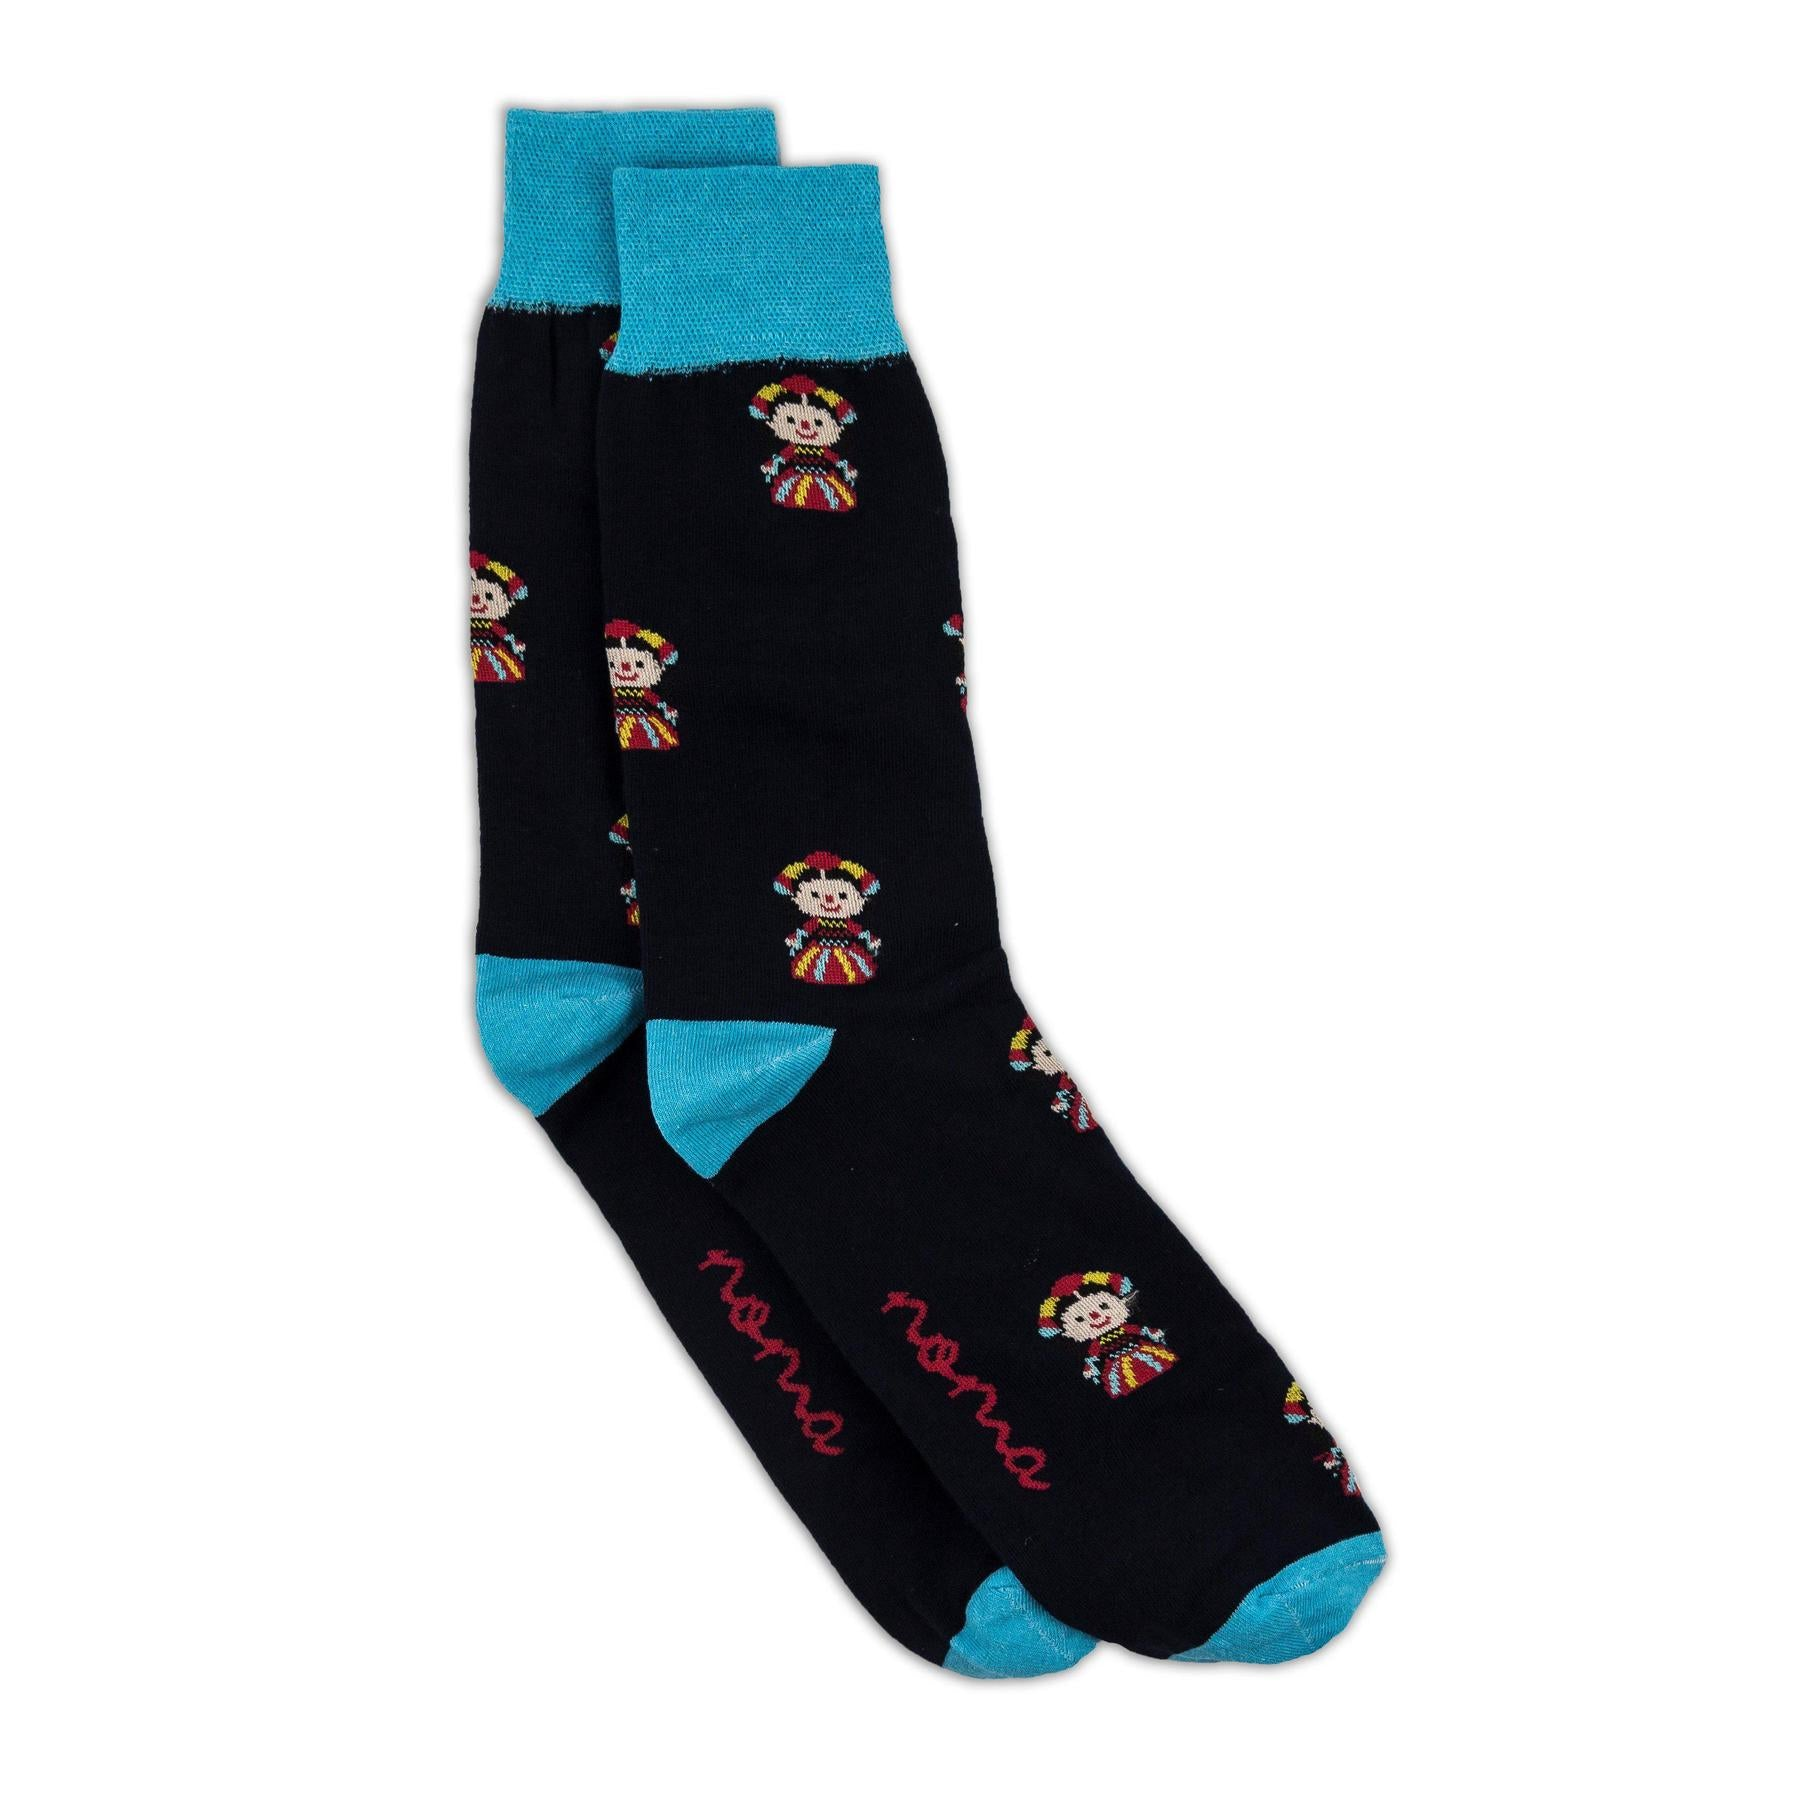 Black and blue mexican pattern socks